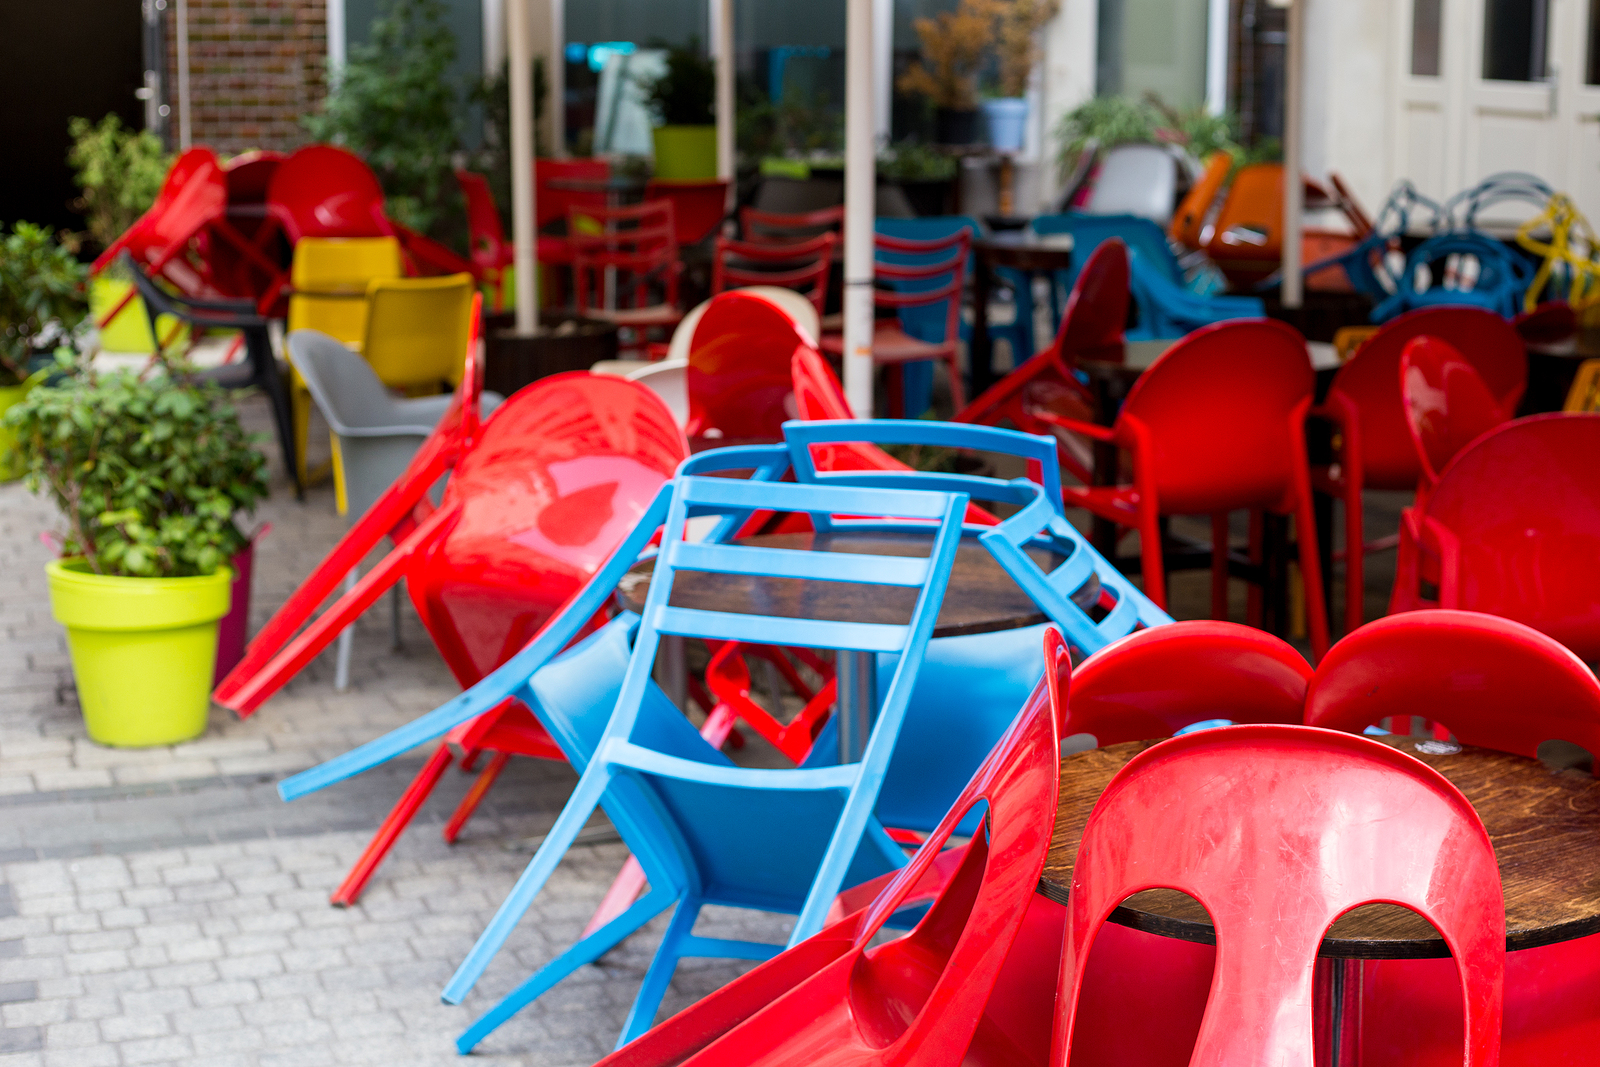 Colourful tables and chairs in a cafe. Yellow, blue, red colors. Outdoor